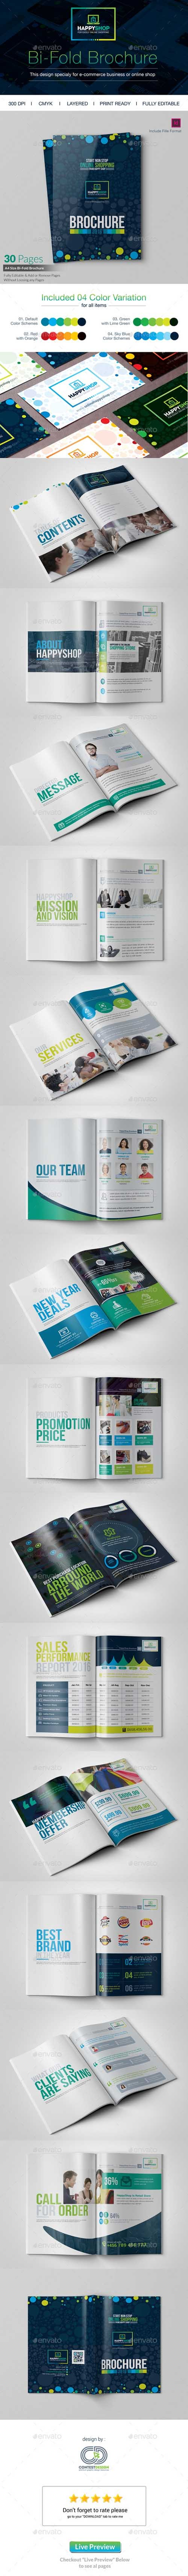 E-Commerce Promotional Bi-Fold Brochure 14464632